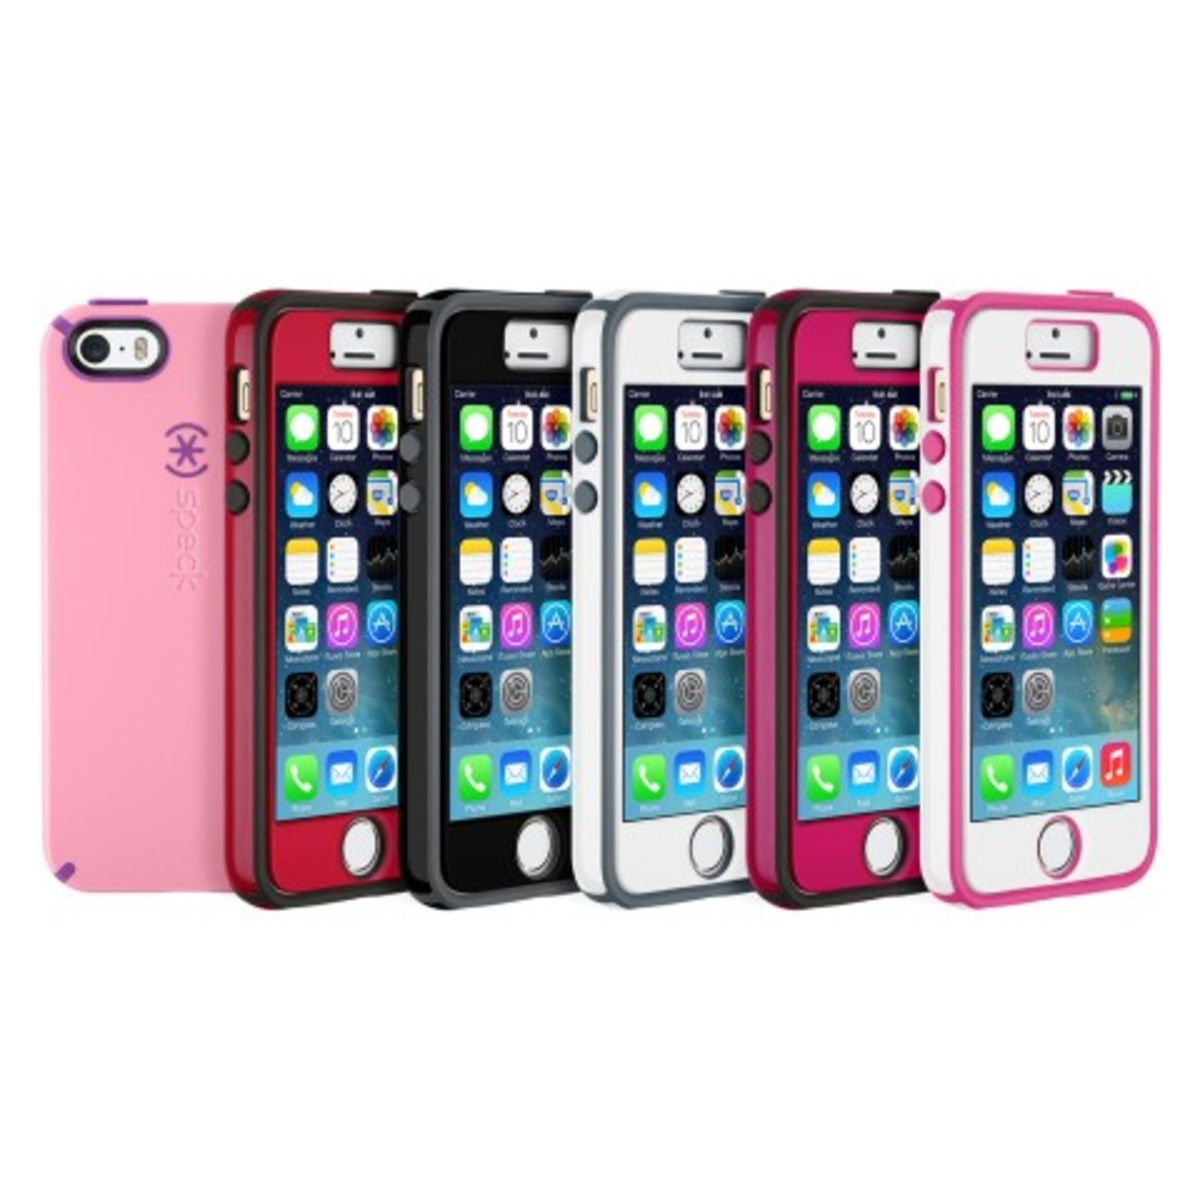 Protective iPhone 5c Cases | Candyshell & Gemshell iPhone ...